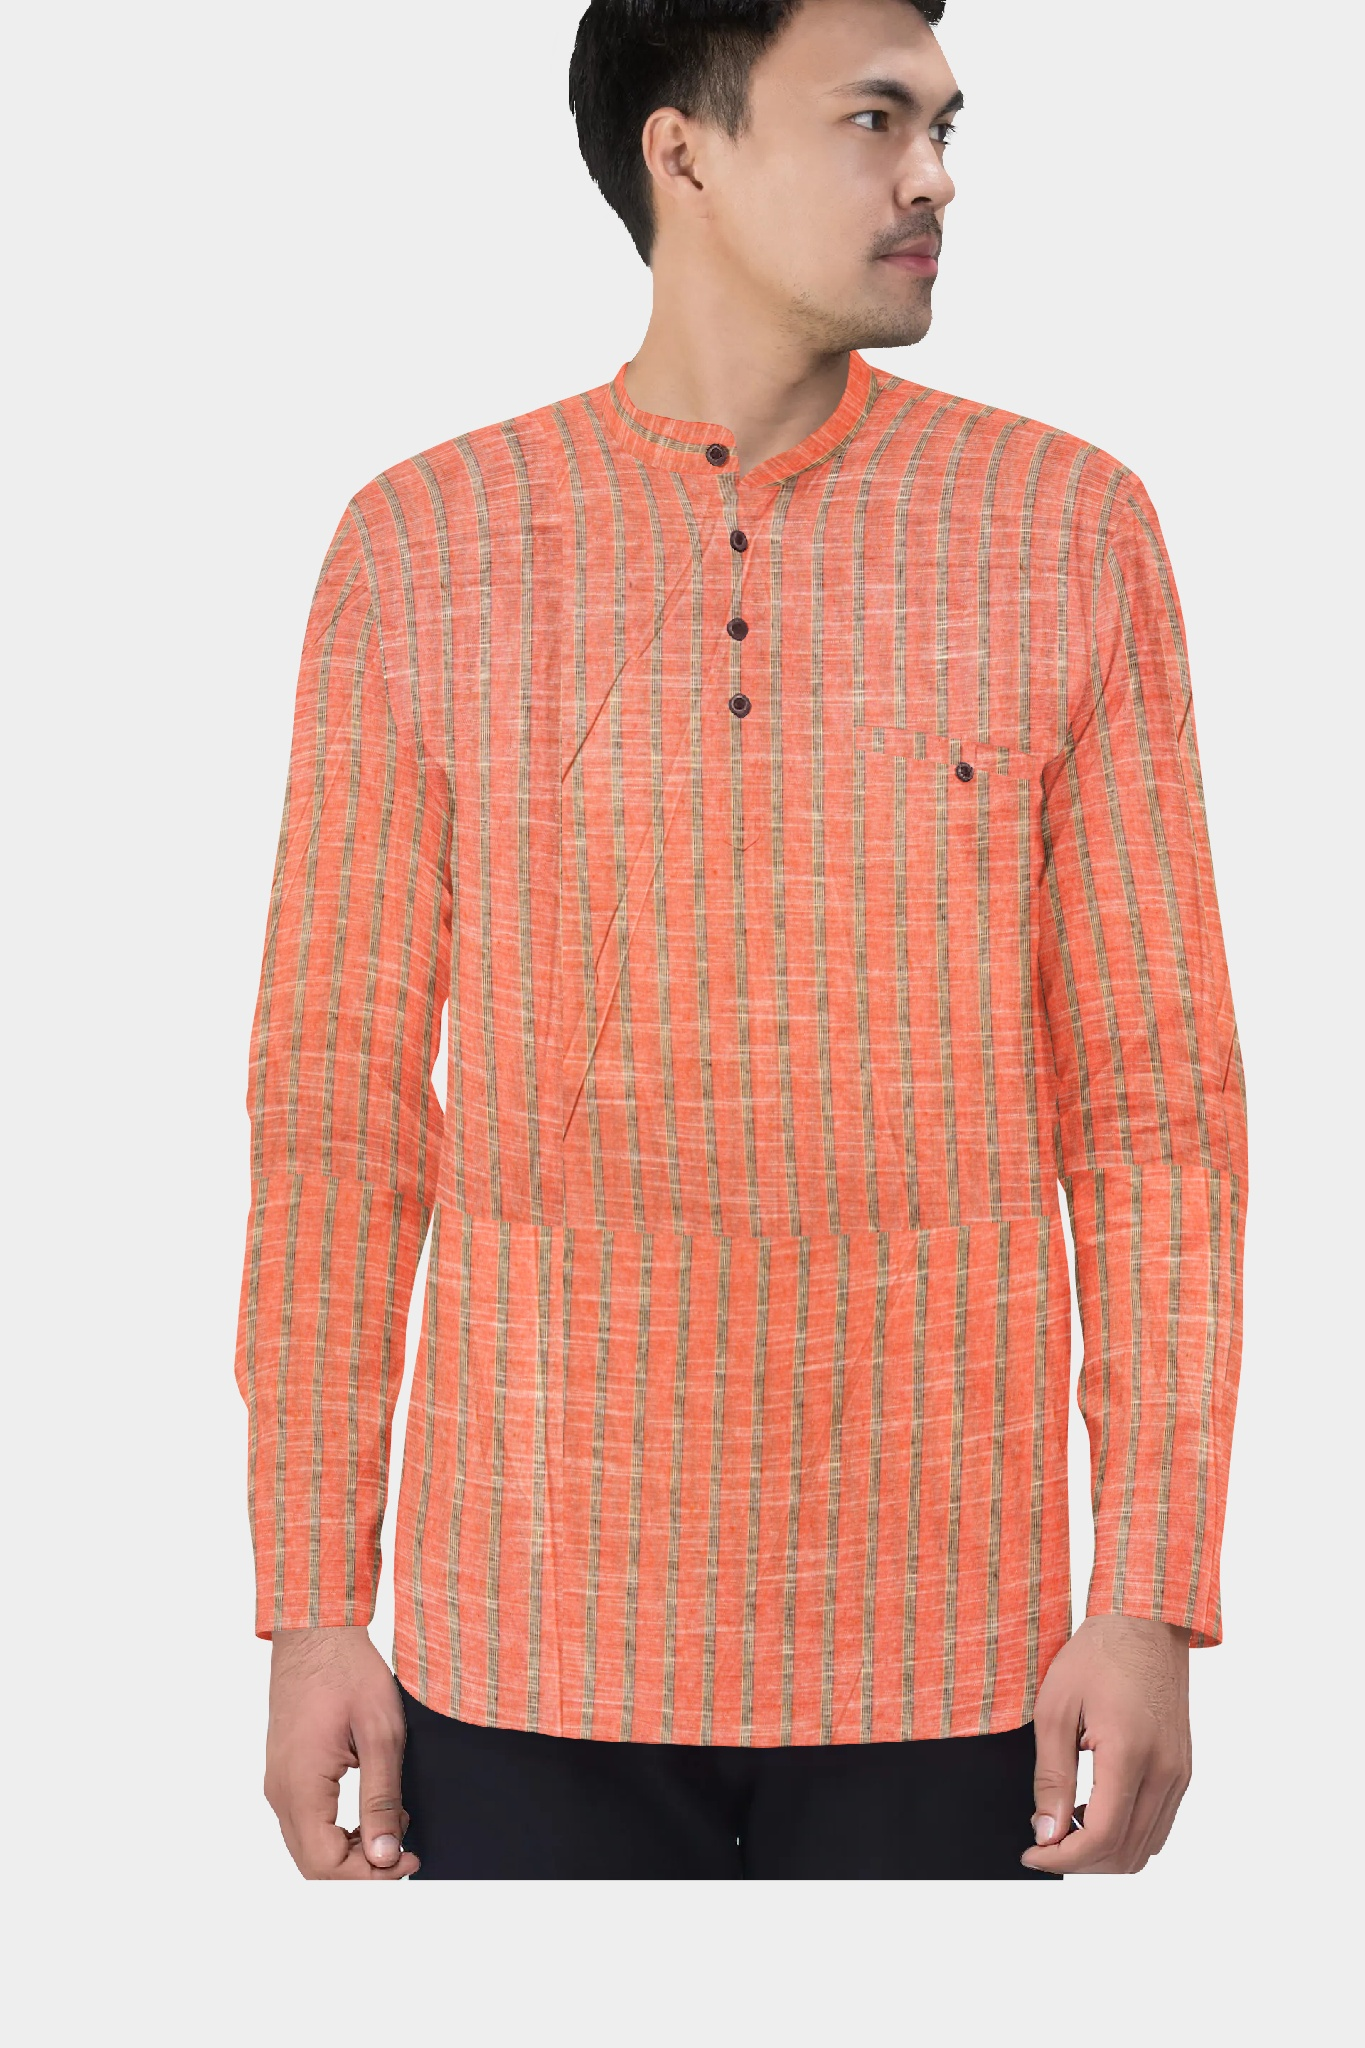 /home/customer/www/fabartcraft.com/public_html/uploadshttps://www.shopolics.com/uploads/images/medium/Peach-Gray-Cotton-Short-Kurta-35460.jpg